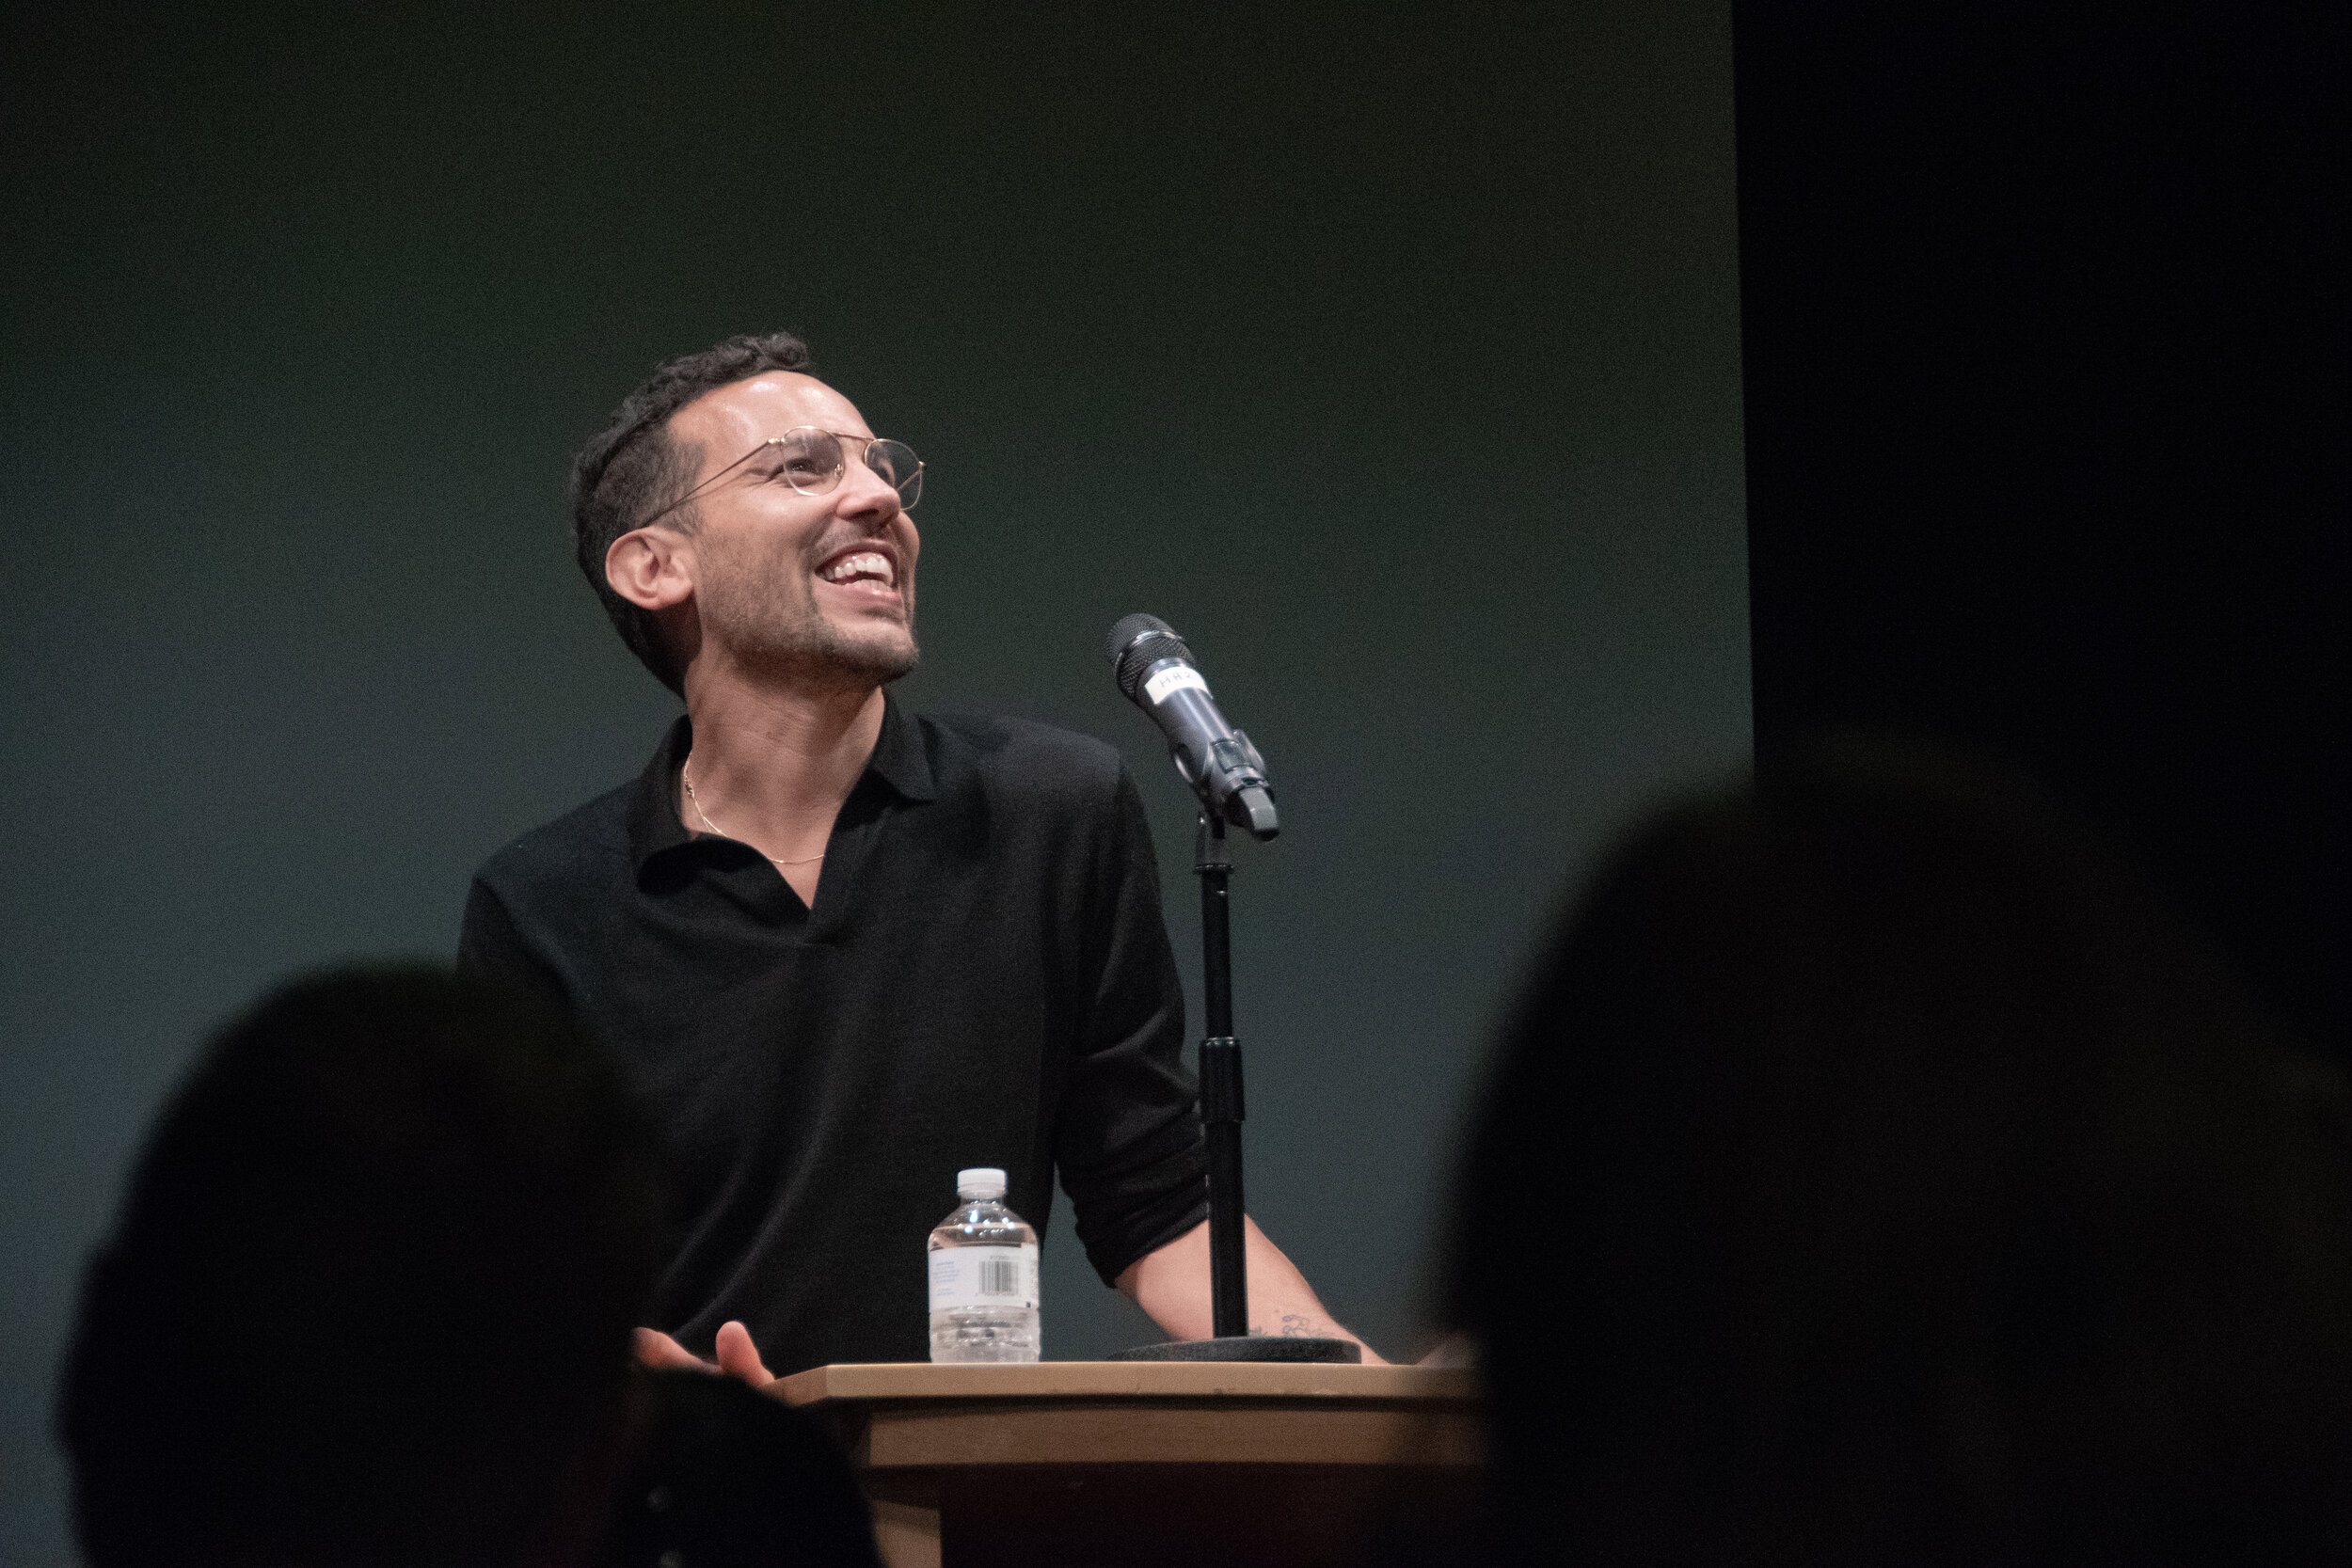 UConn's Creative Writing Program hosts speaker Justin Torres at the Barns & Noble in Stores Center this Tuesday. Torres read selected portions of his new novels and some older work, as well as conducting a Q&A with audience members.  Photo by Avery Bikerman / The Daily Campus